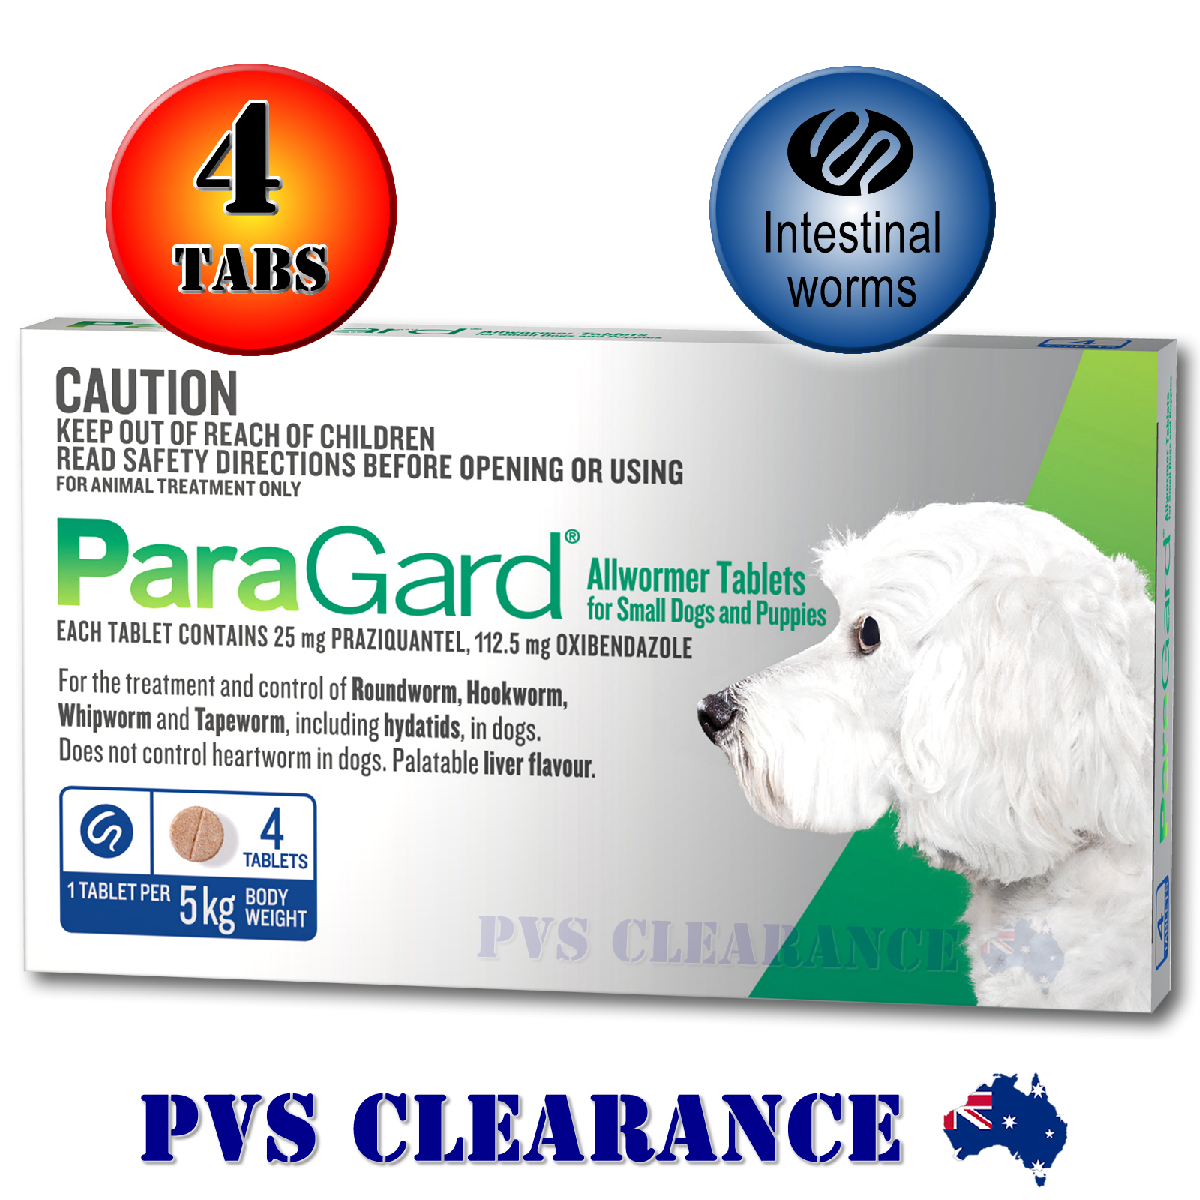 Details about Paragard Blue 4 Allwormer for Small Dogs Up To 5 kg 4-Pack  Paraguard Tapeworm